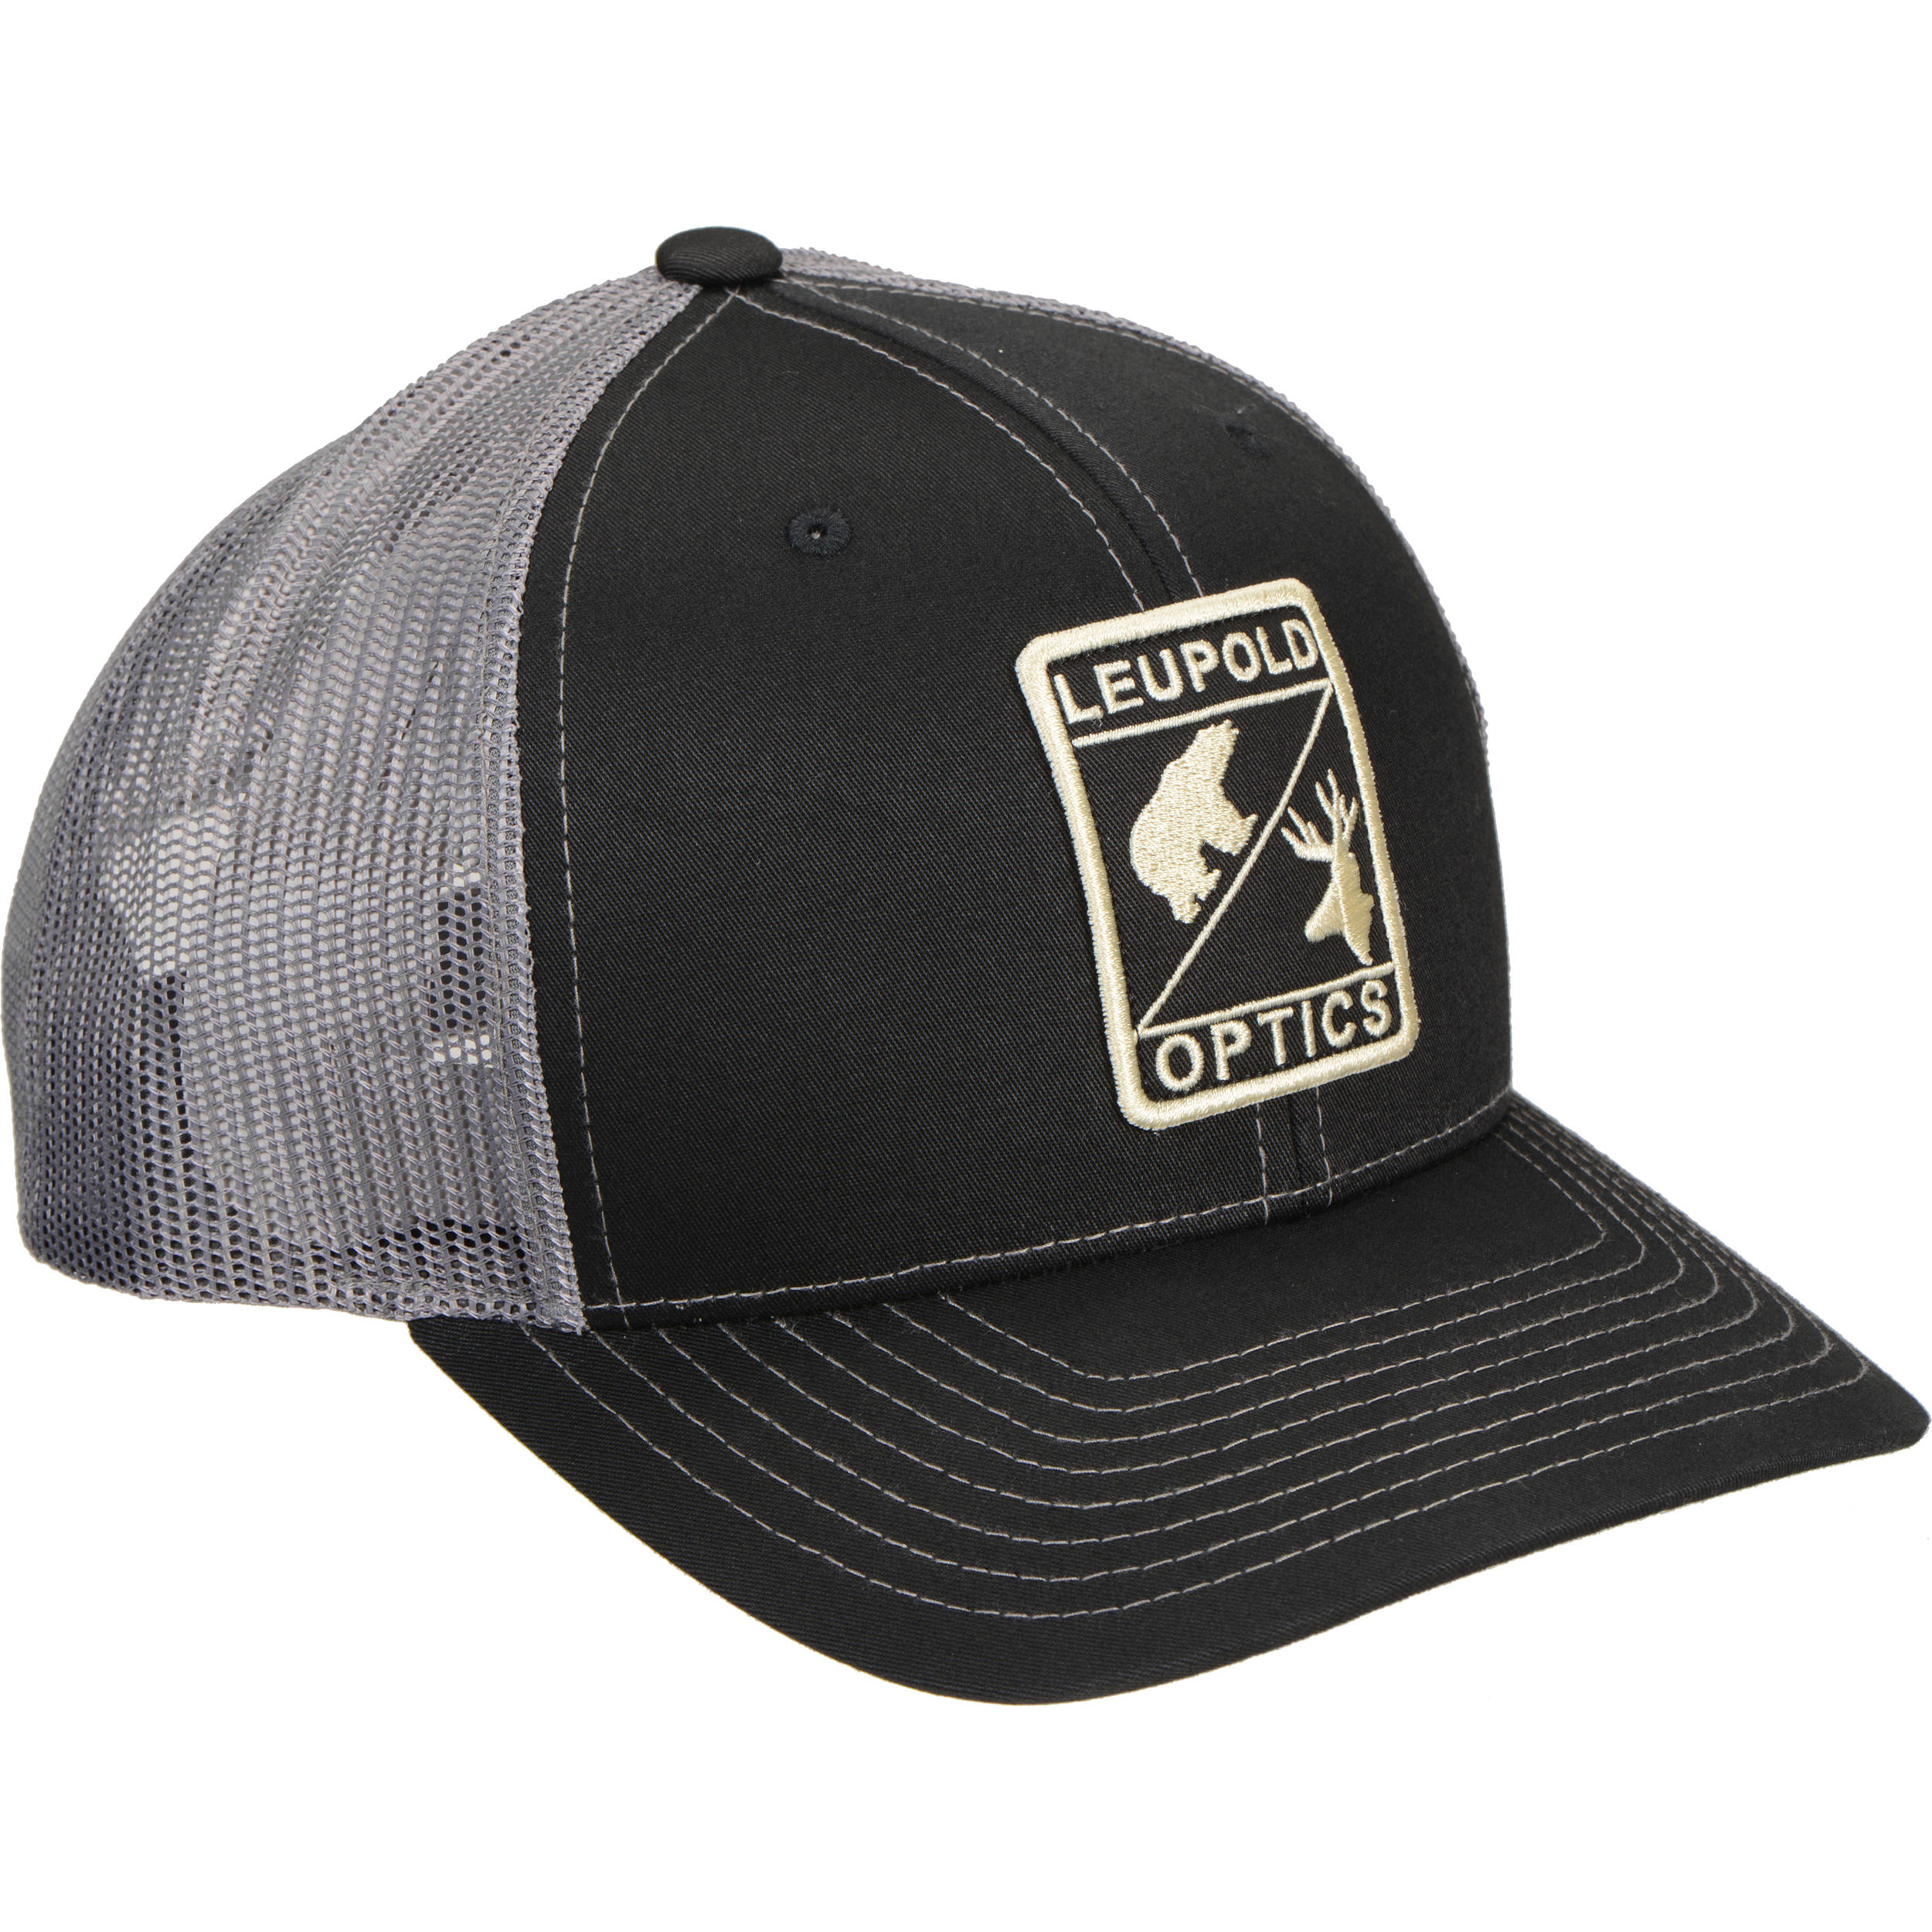 4a314ce8460 Leupold L Optic Trucker Hat (Black Charcoal